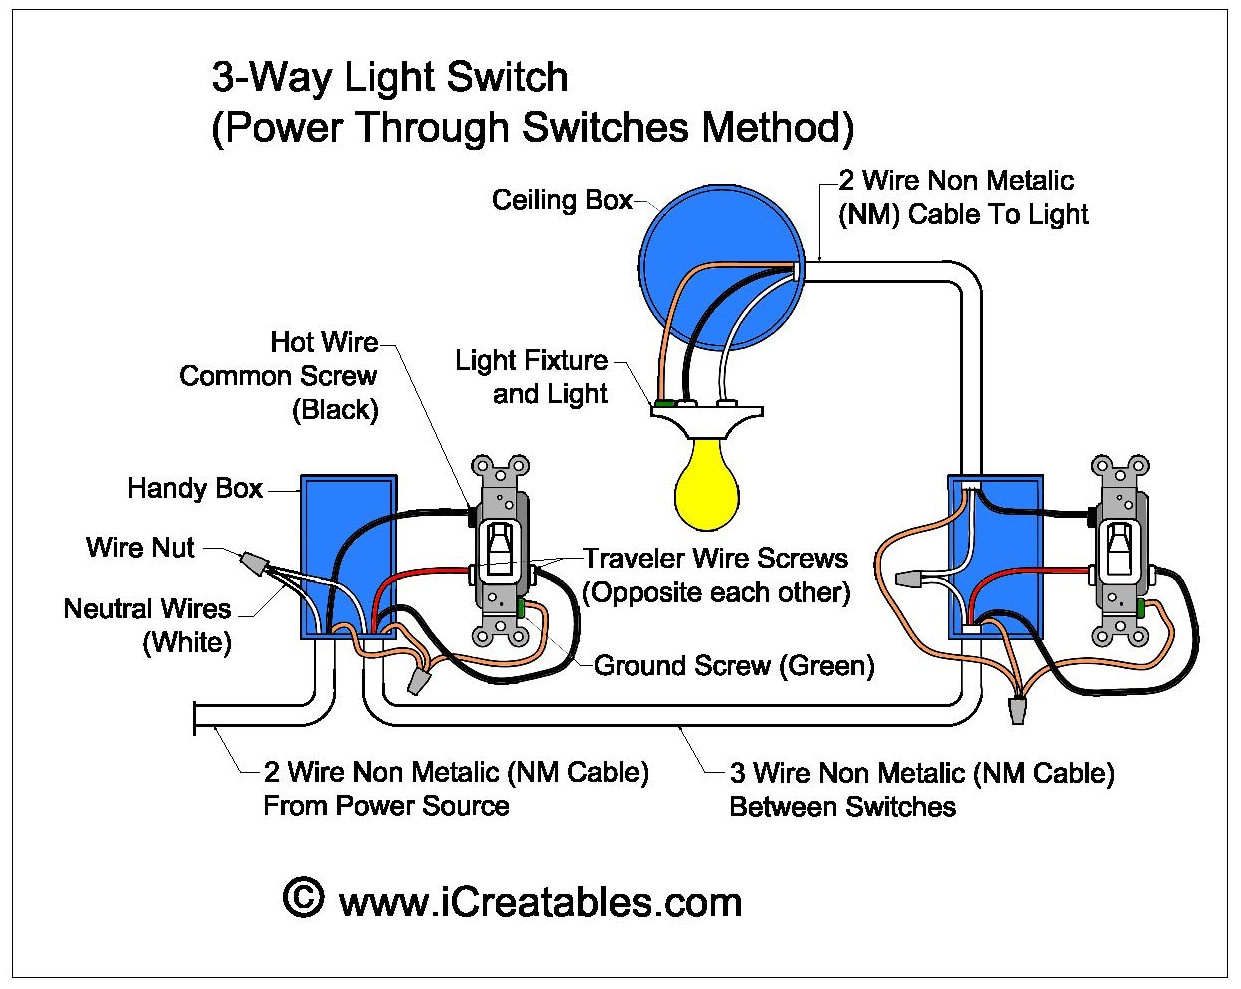 three way switch wiring diagram jpg wire a three way switch icreatables com wiring diagram 2 switches 1 power source at n-0.co